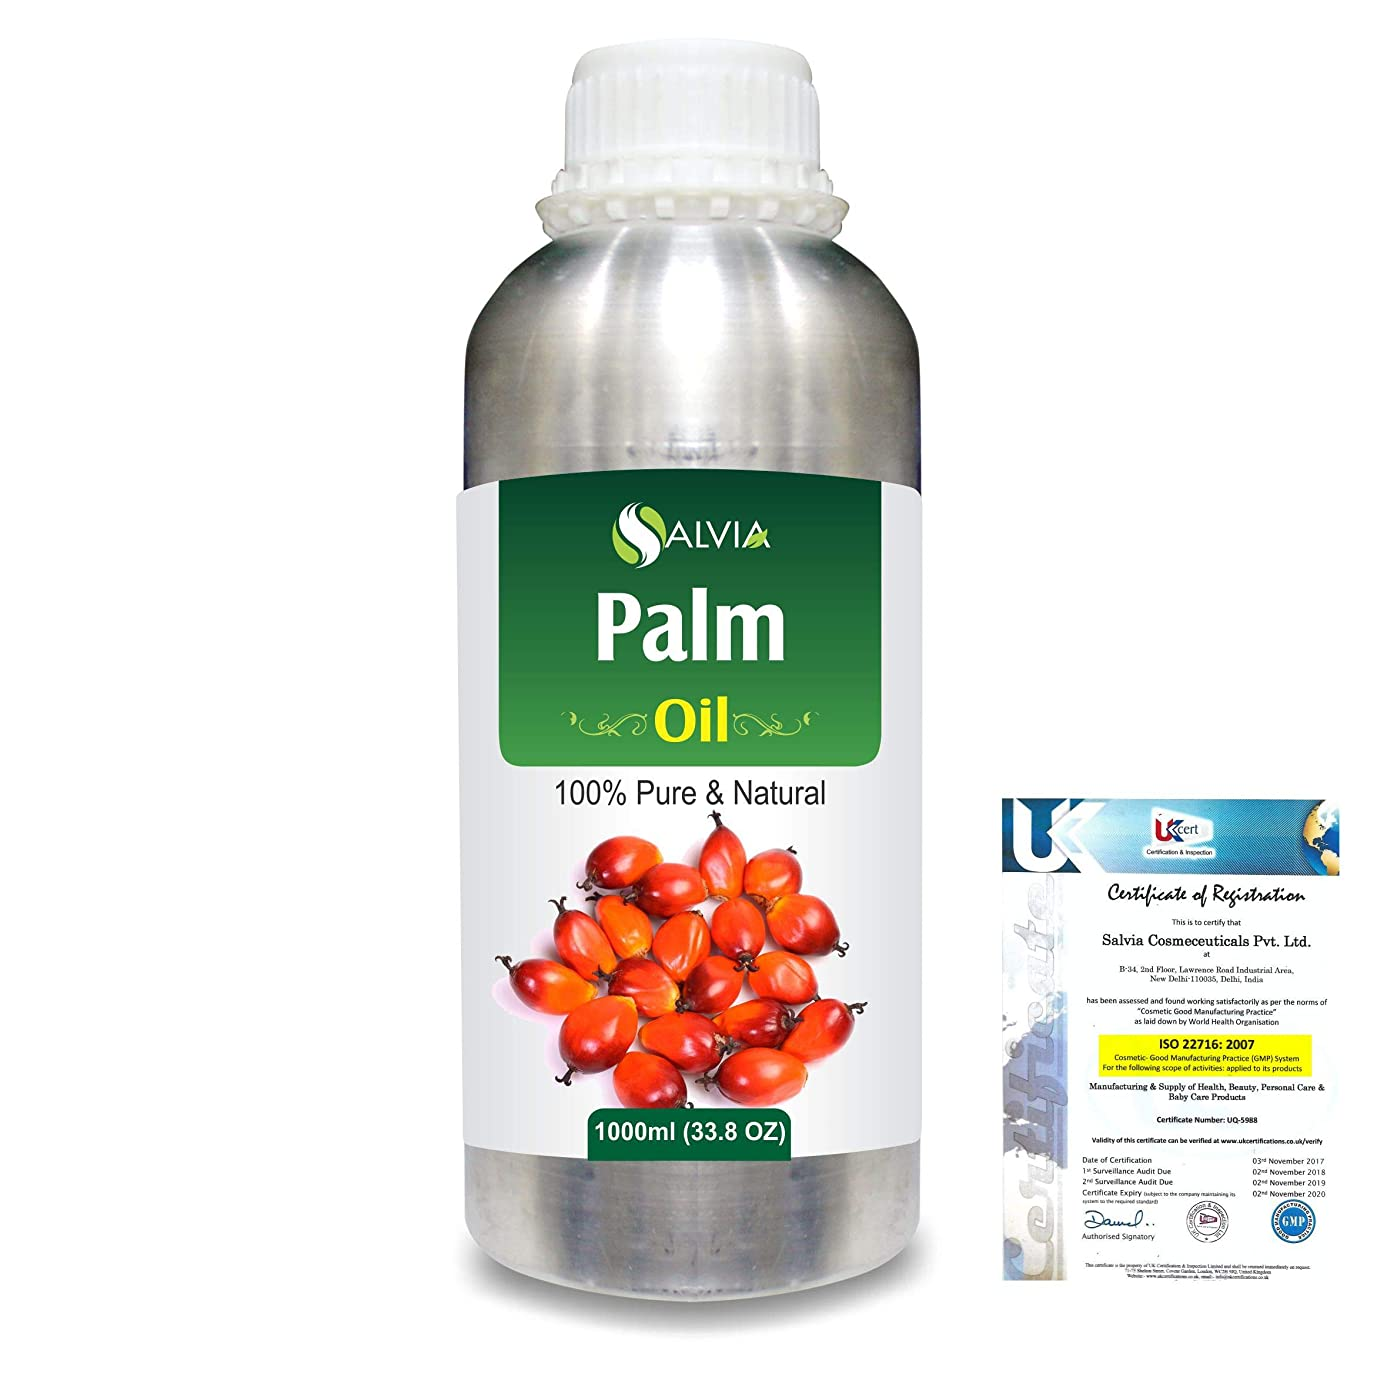 シルエット機知に富んだ準備するPalm (Elaeis guineensis)100% Natural Pure Carrier Oil 1000ml/33.8fl.oz.